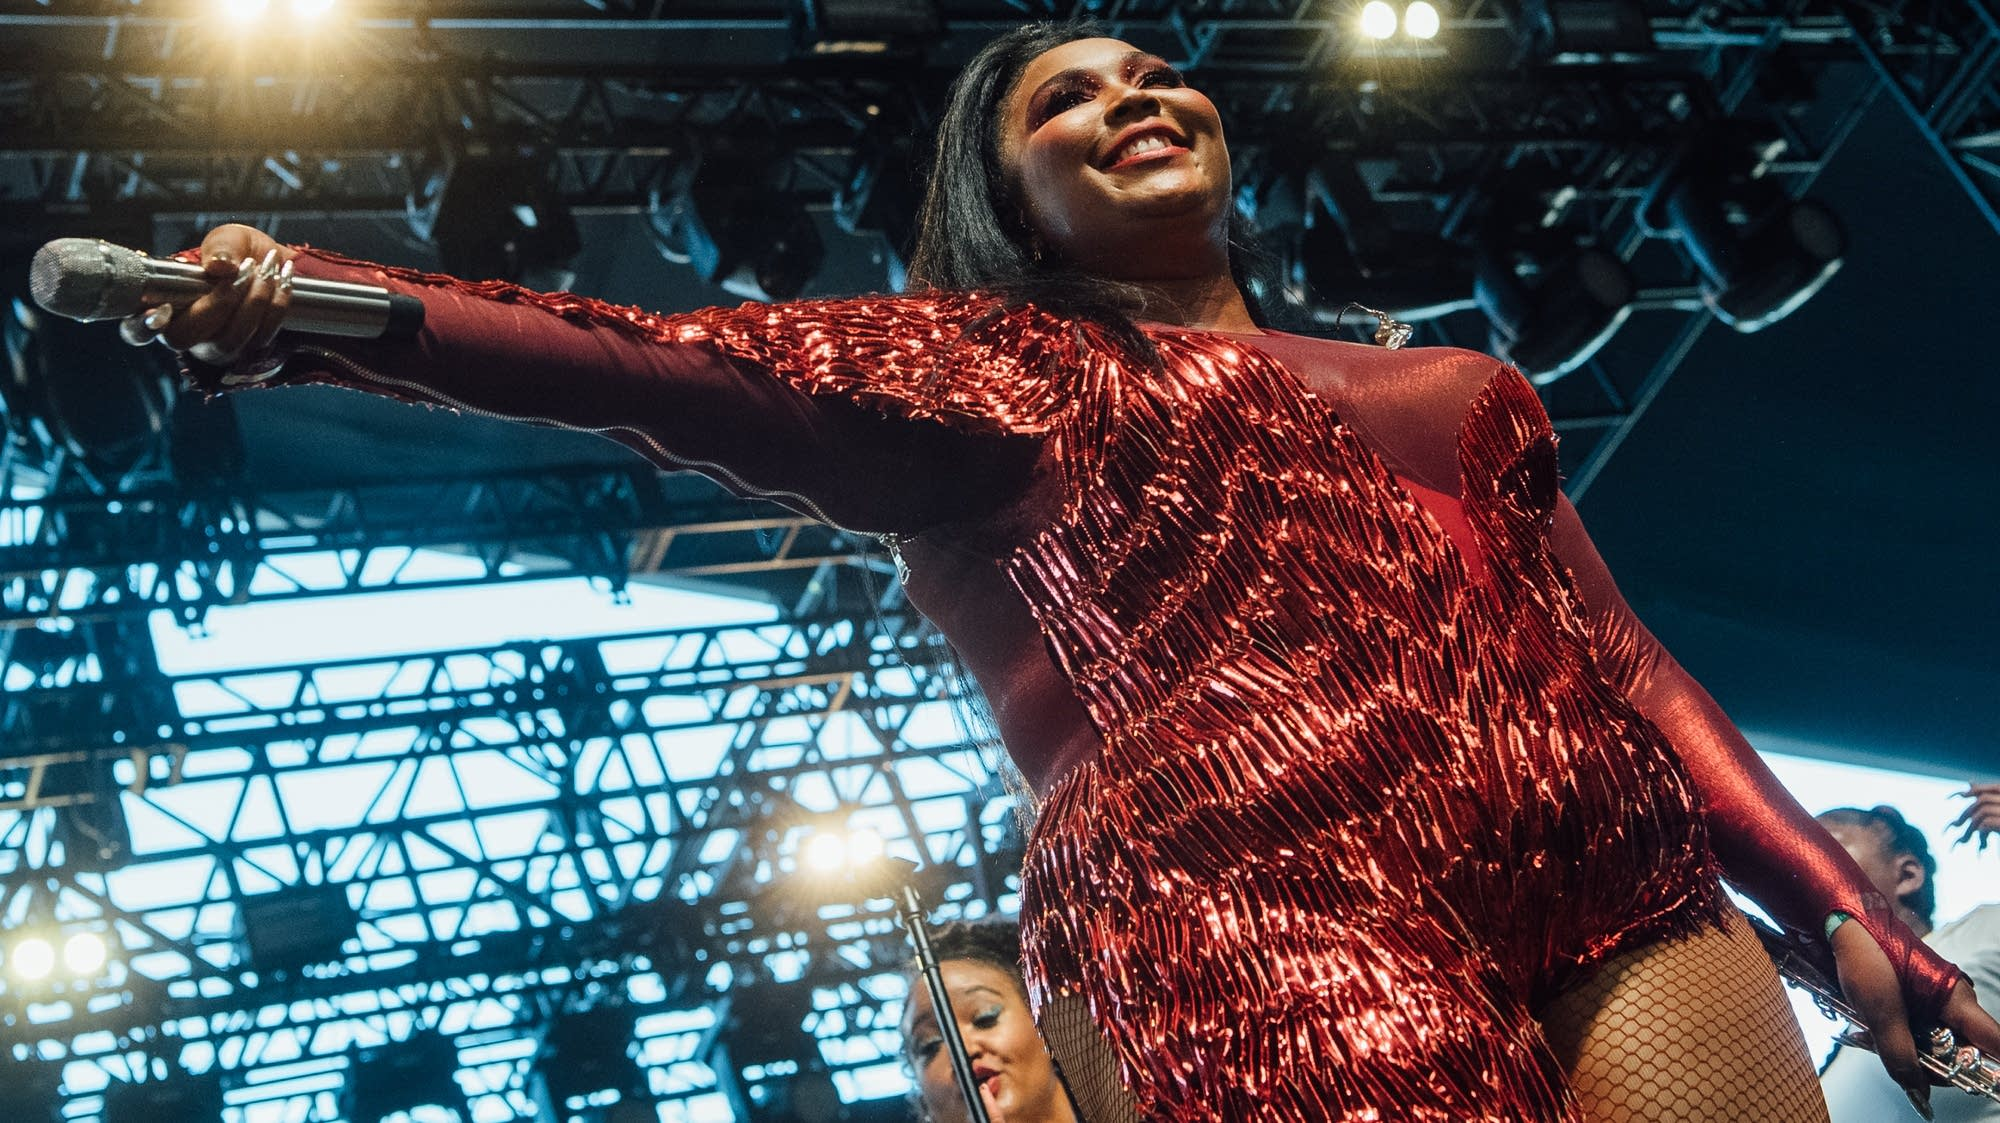 Lizzo performs onstage at Coachella on April 21 in Indio, Calif.